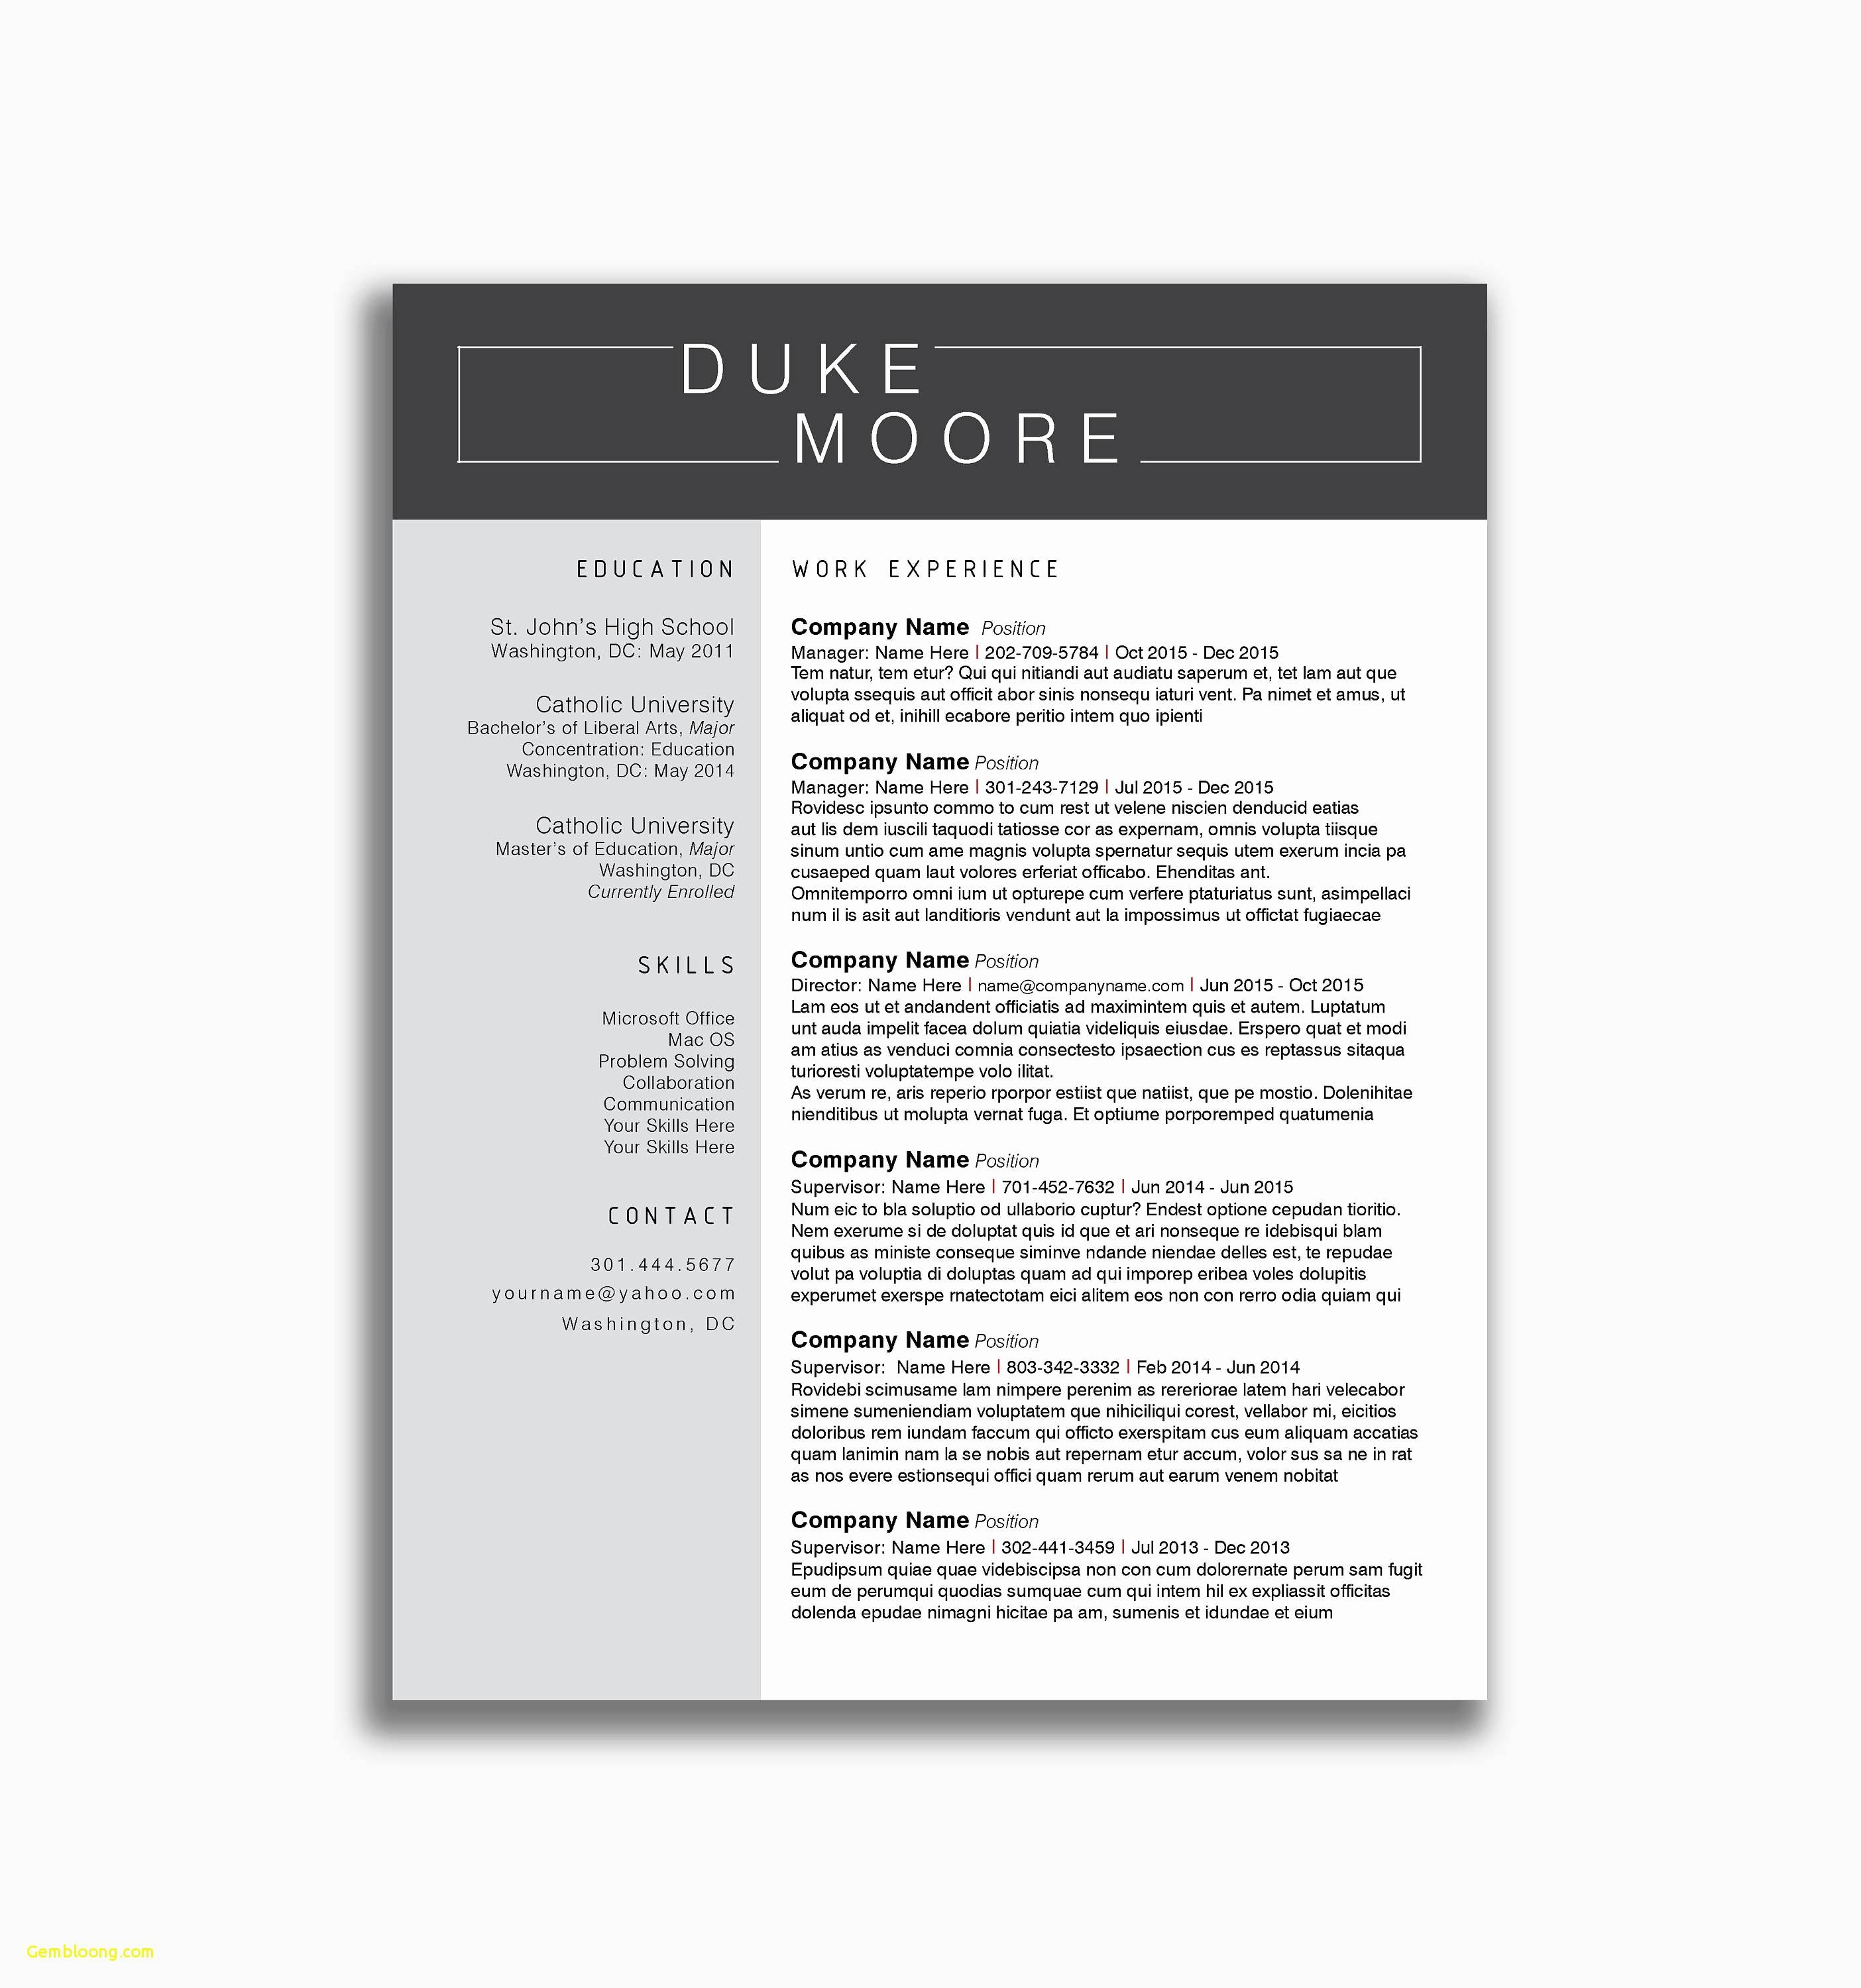 Business Cover Letter Template Microsoft Word - Lawyer Resume Template Inspirational button Template for Word